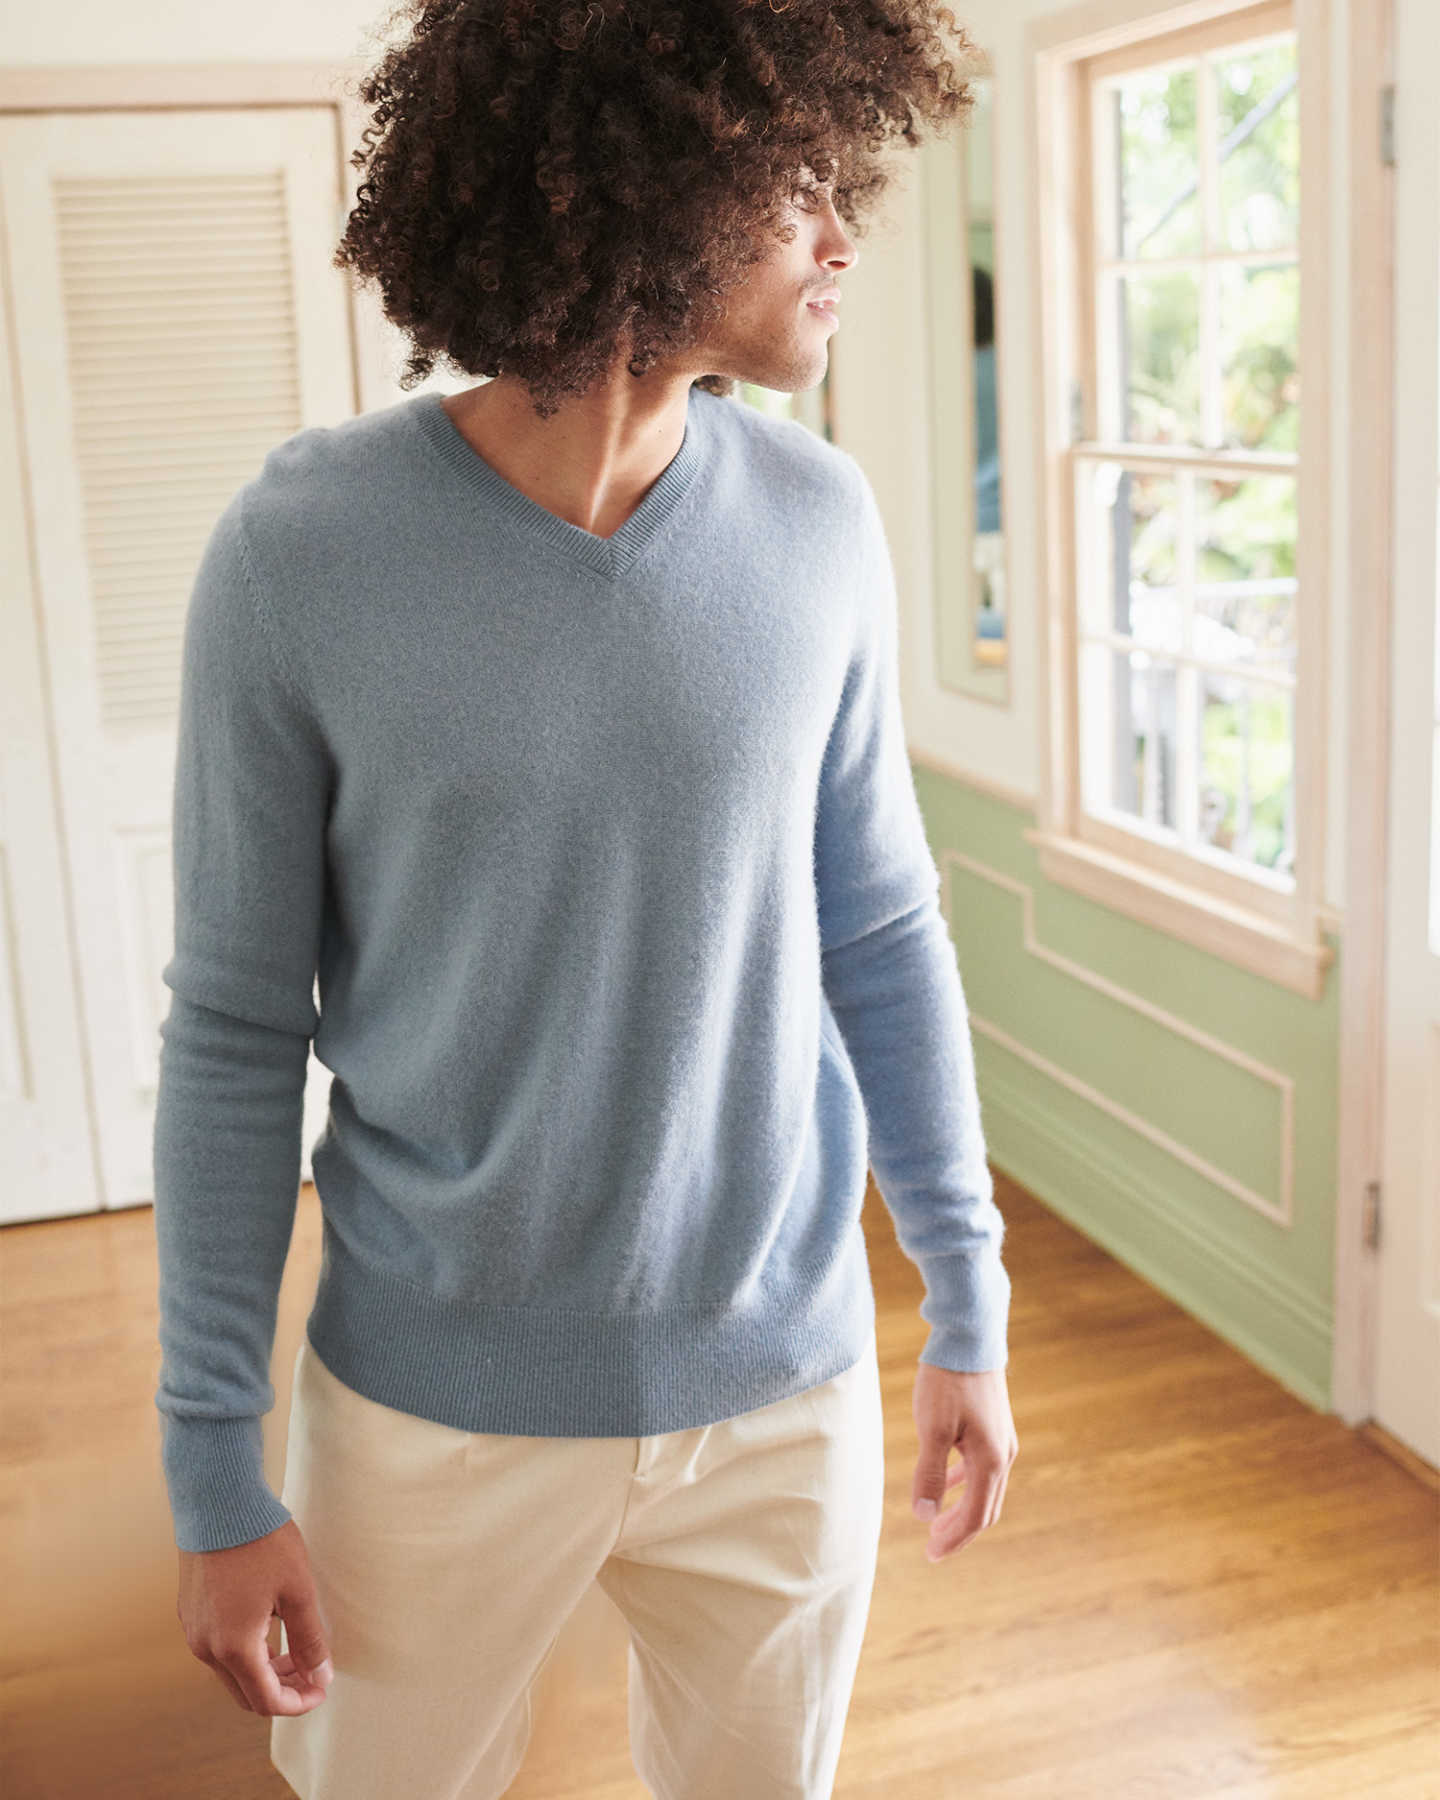 Man wearing blue cashmere v-neck sweater for men looking